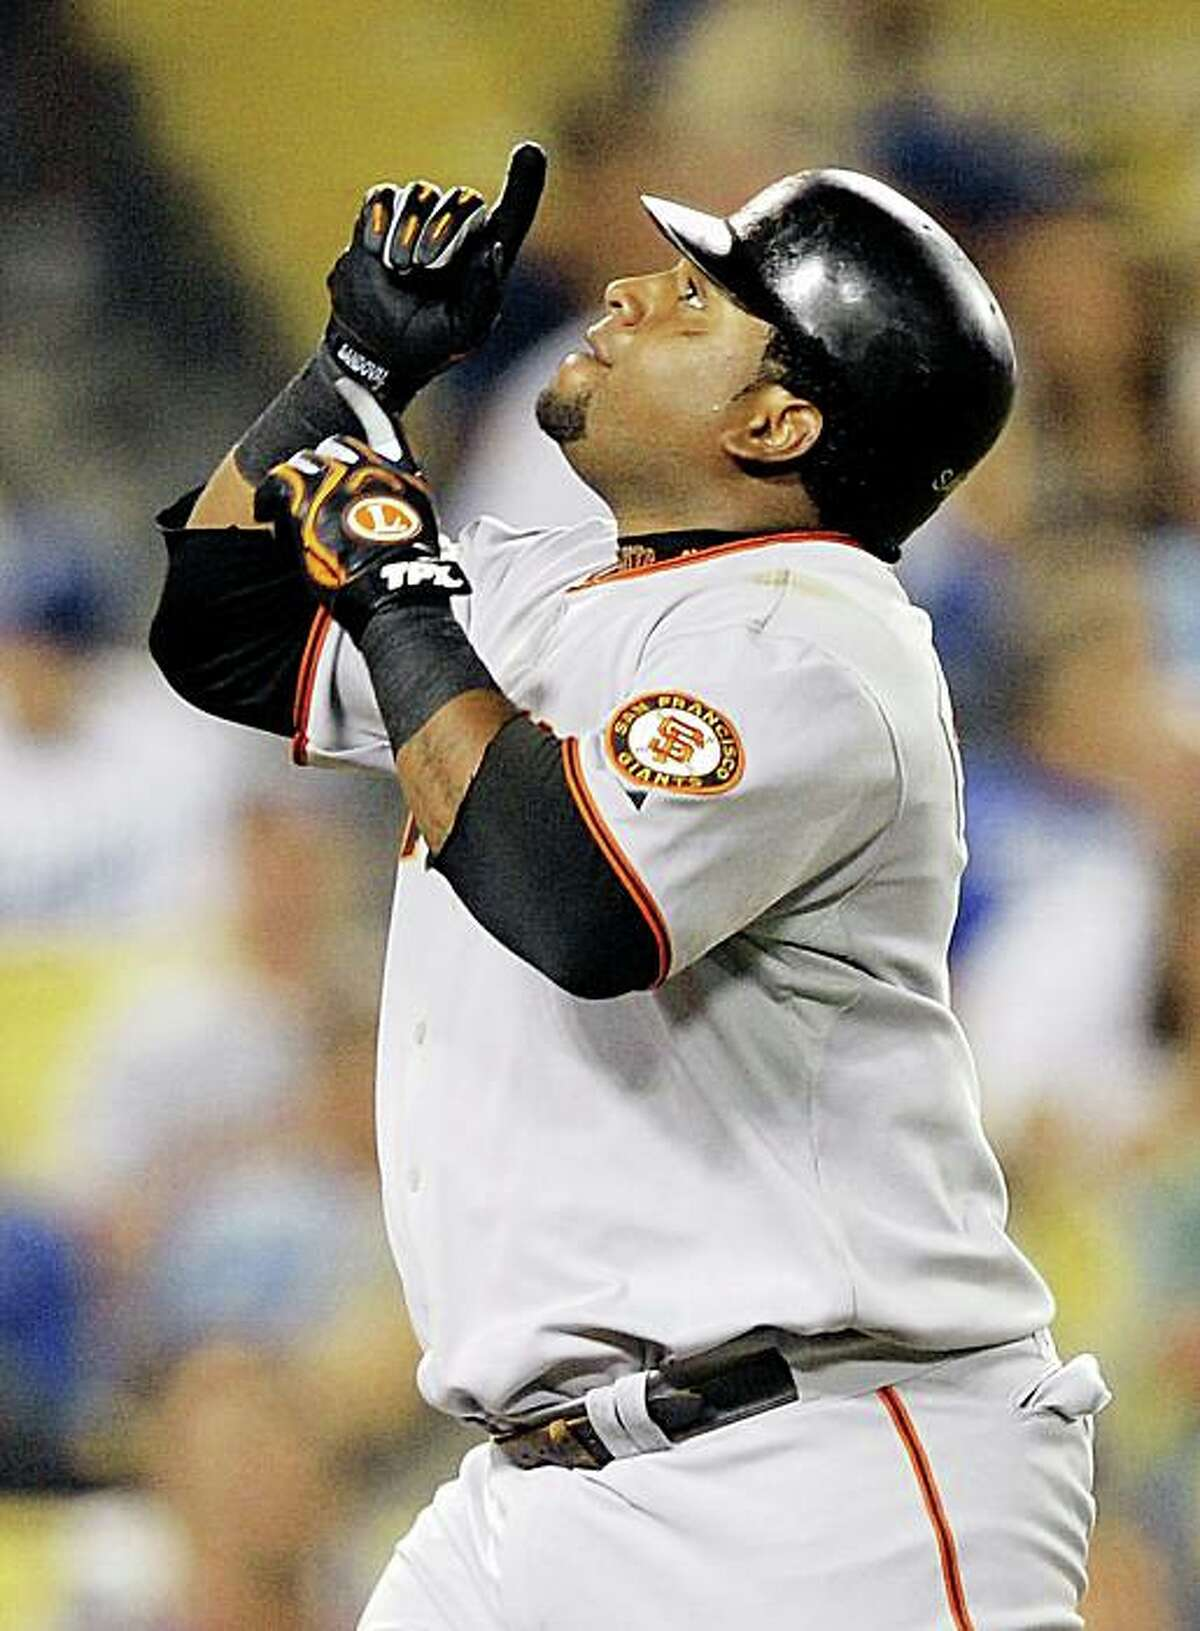 San Francisco Giants' Pablo Sandoval celebrates after hitting a three-run home run during the third inning of their Major League Baseball game against the Los Angeles Dodgers, Friday, Sept. 18, 2009, in Los Angeles. (AP Photo/Mark J. Terrill)